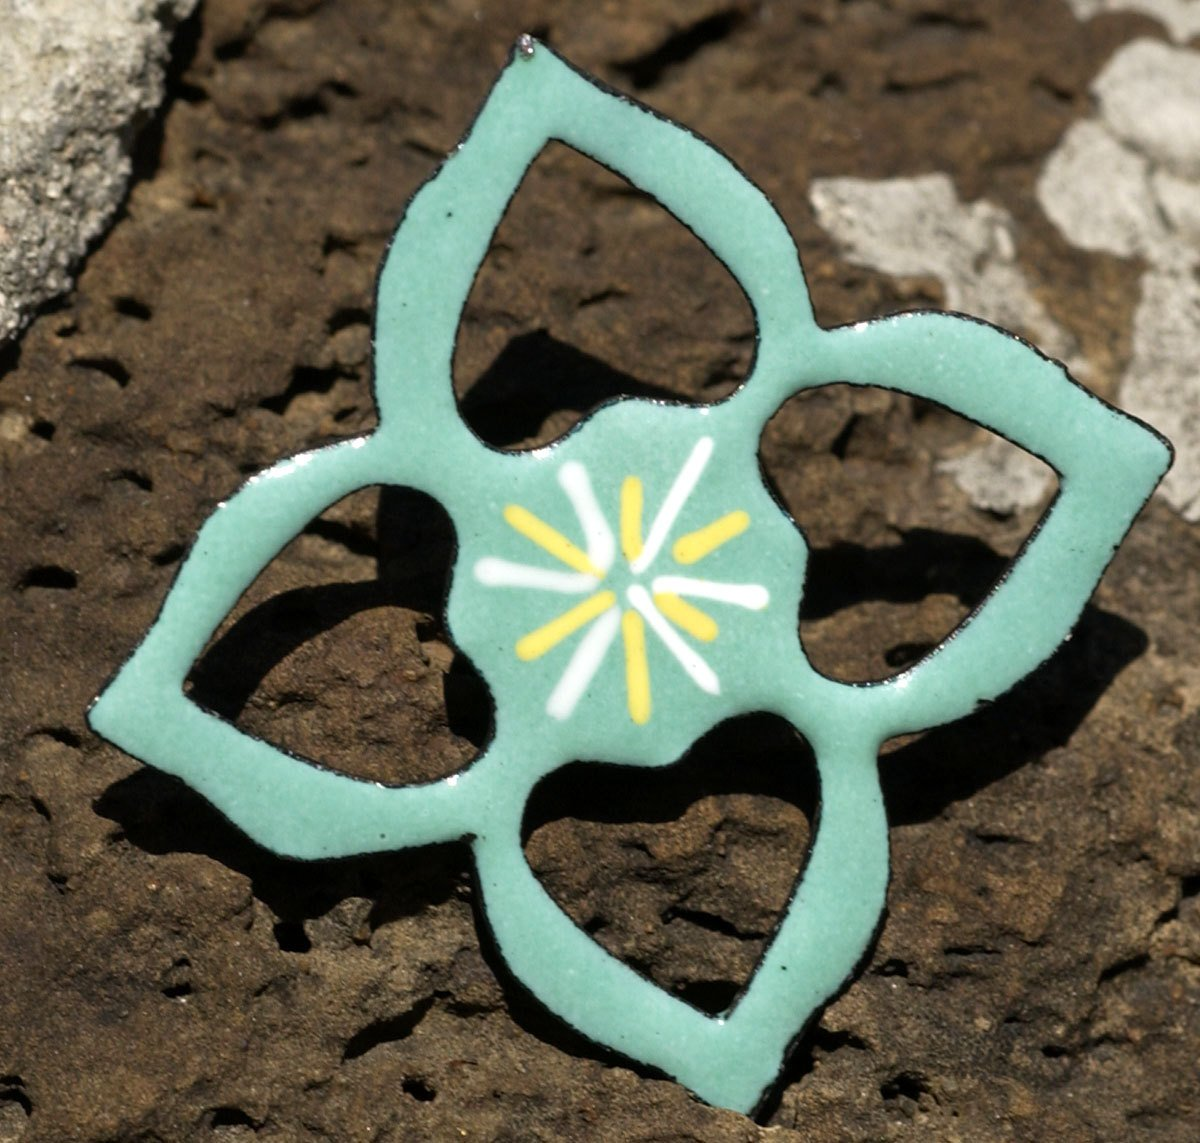 Copper Heart Flower 23mm Cutout for Enameling Stamping Texturing - 4 pieces